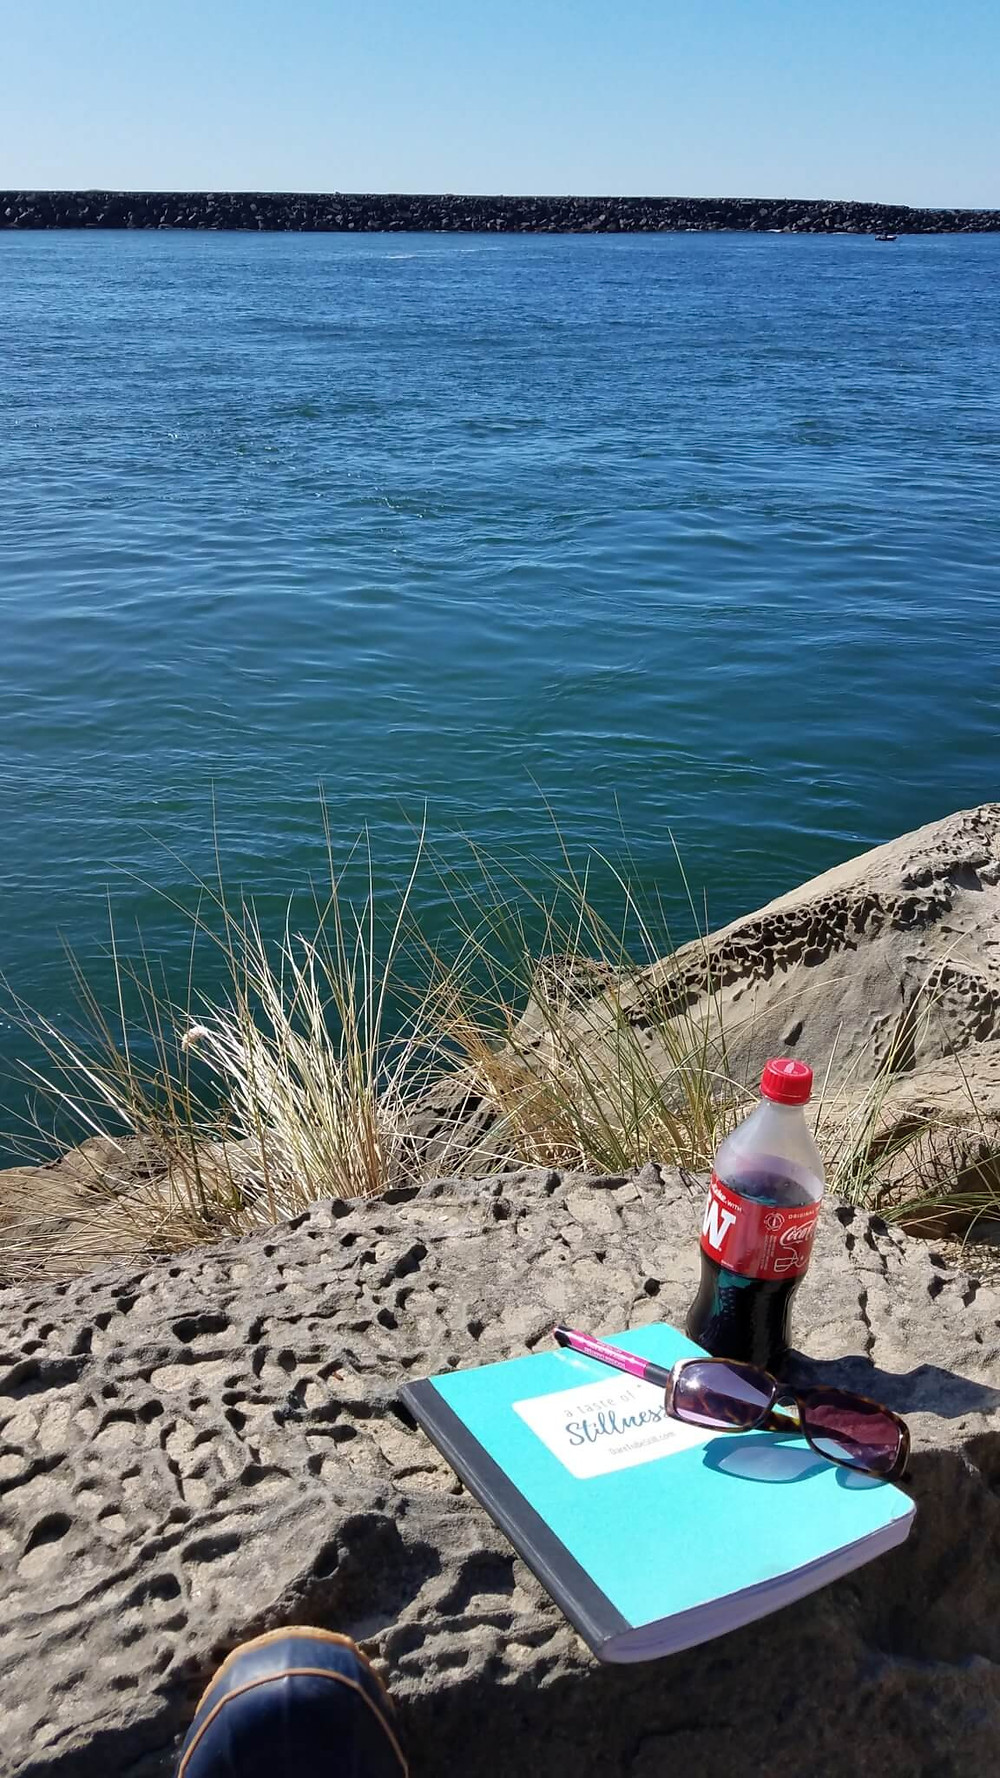 journaling by the ocean